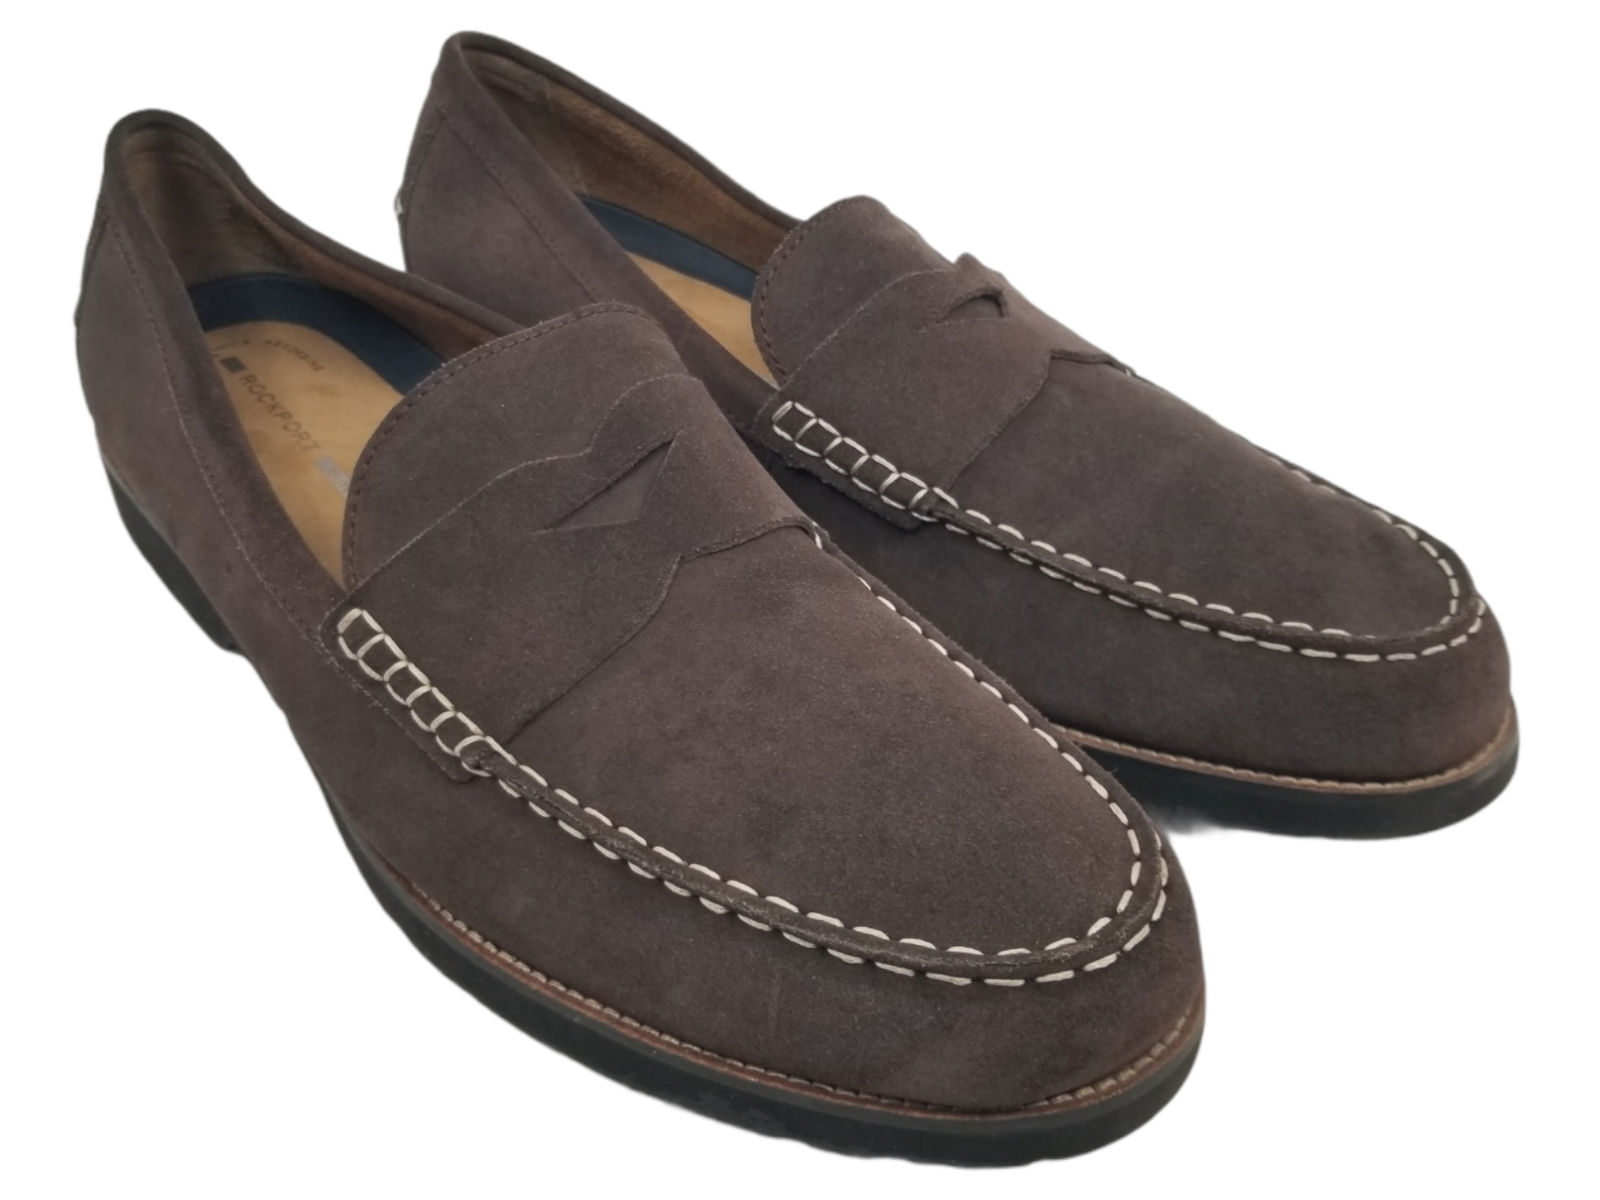 Rockport TRUTECH Mens Brown Suede Slip On Penny Loafer Shoes~Mens Sz: 16 M